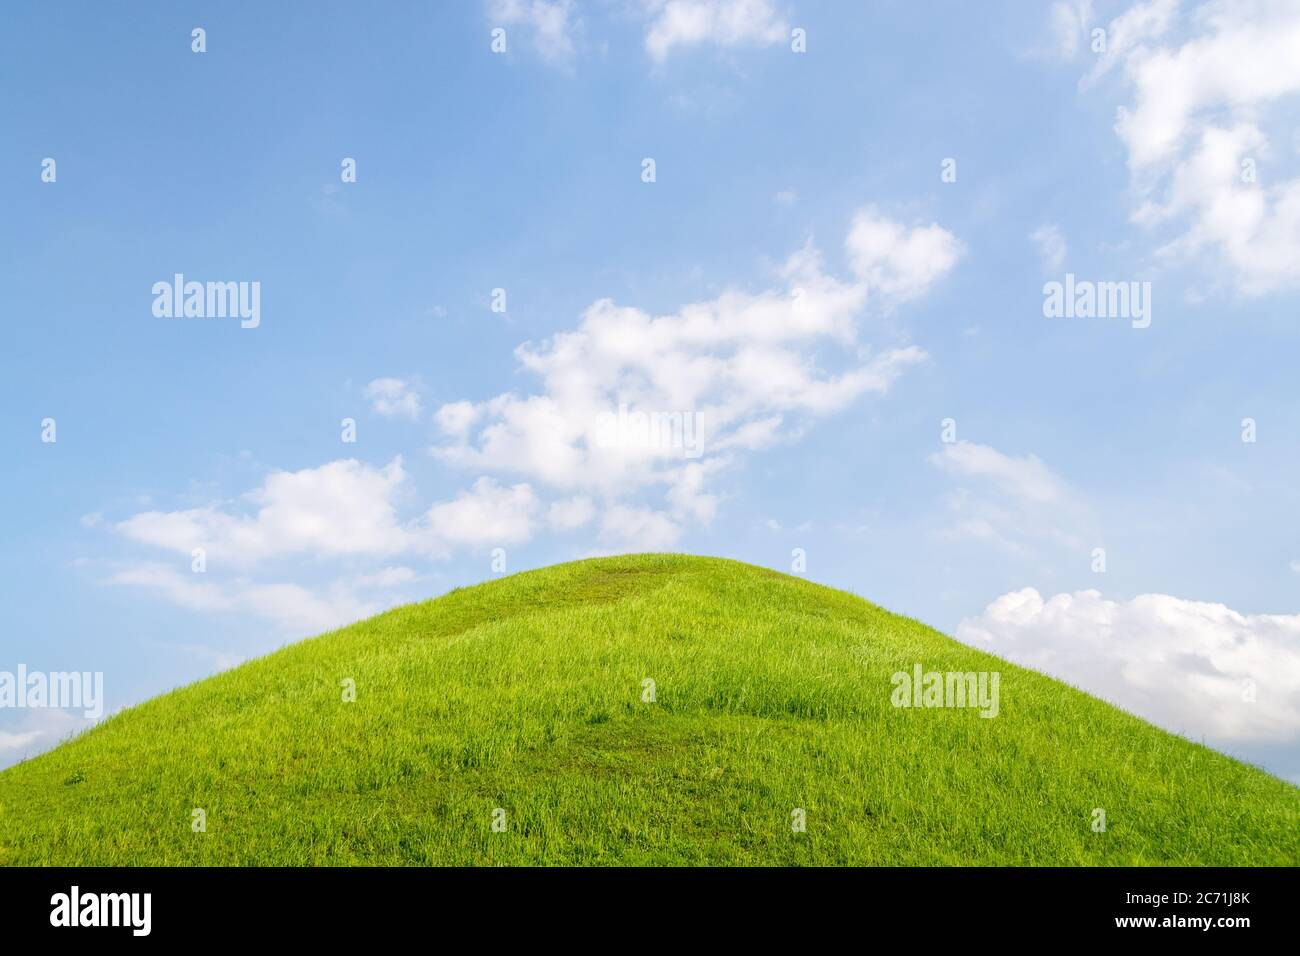 Royal tomb in Daeruengwon, Gyeongju, Korea. Capital city of Silla dynasty - Verdant hill on a sunny day with clear sky and some clouds. Stock Photo